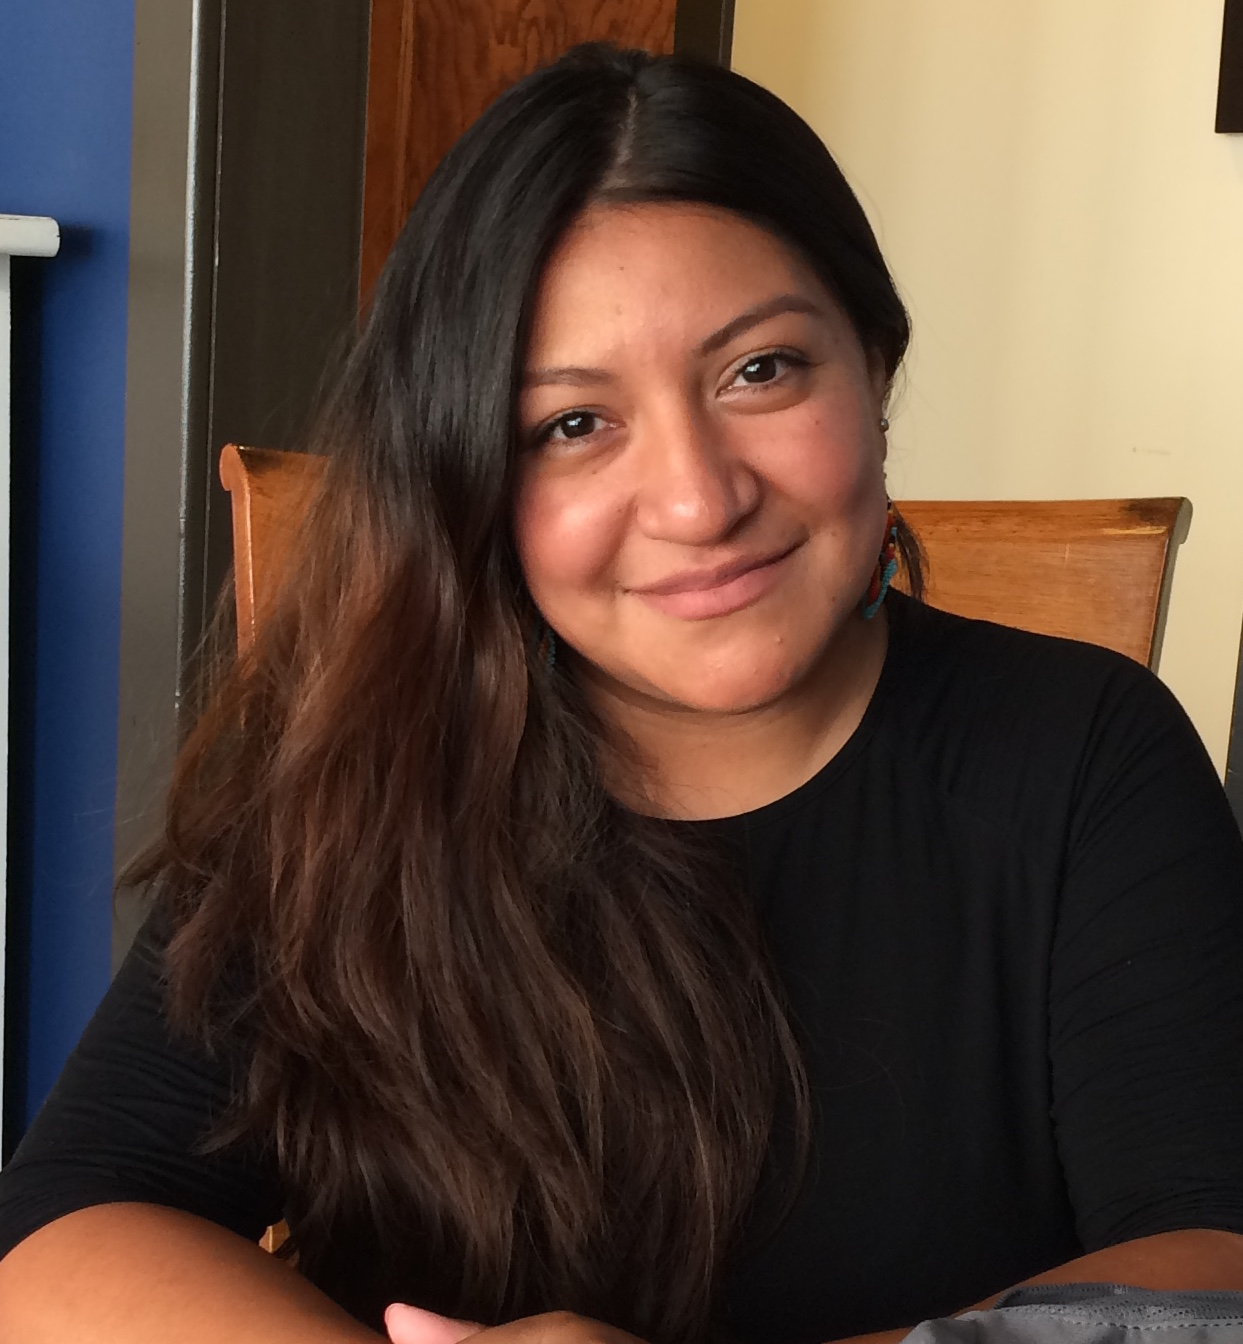 interview with an immigrant essay